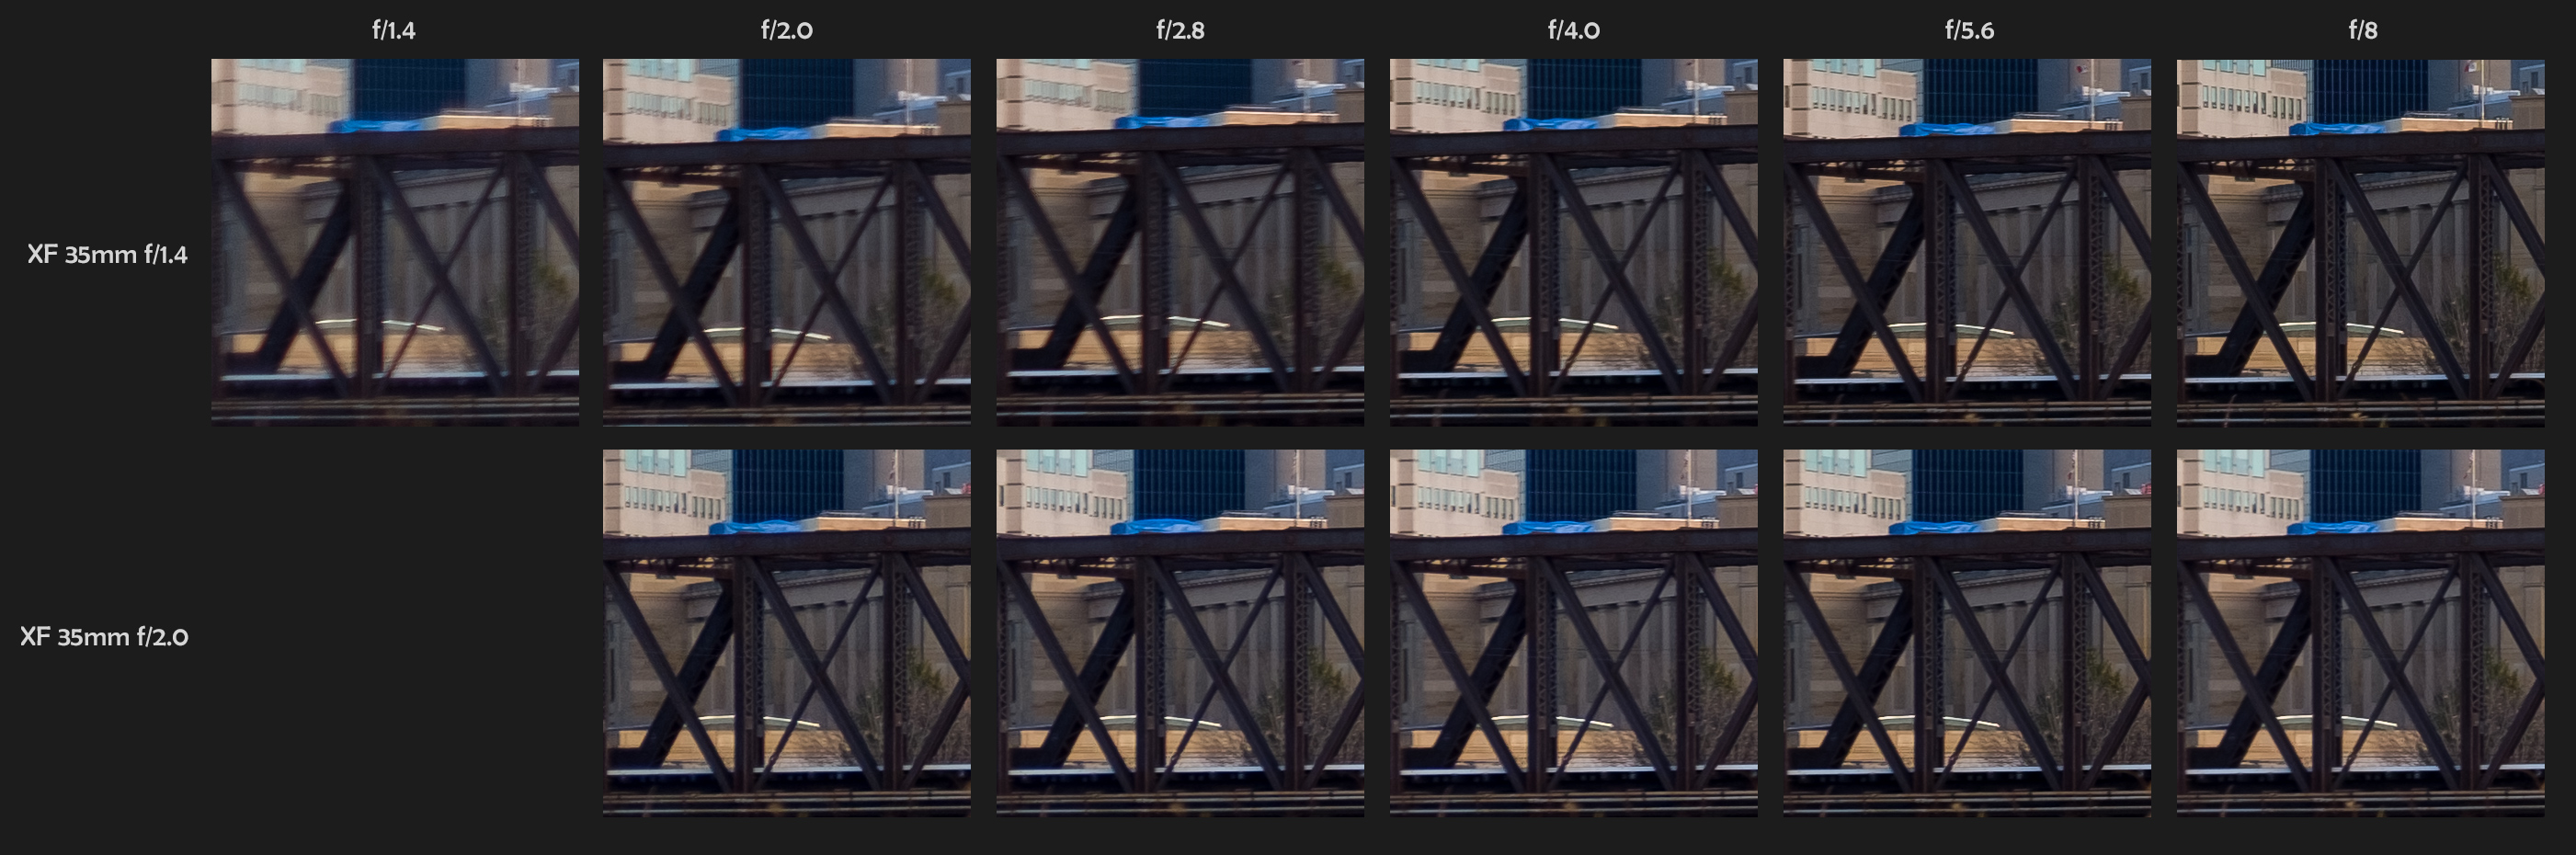 XF 35mm f/1.4 vs. XF 35mm f/2 - 100% Edge Crops (Click to Enlarge)